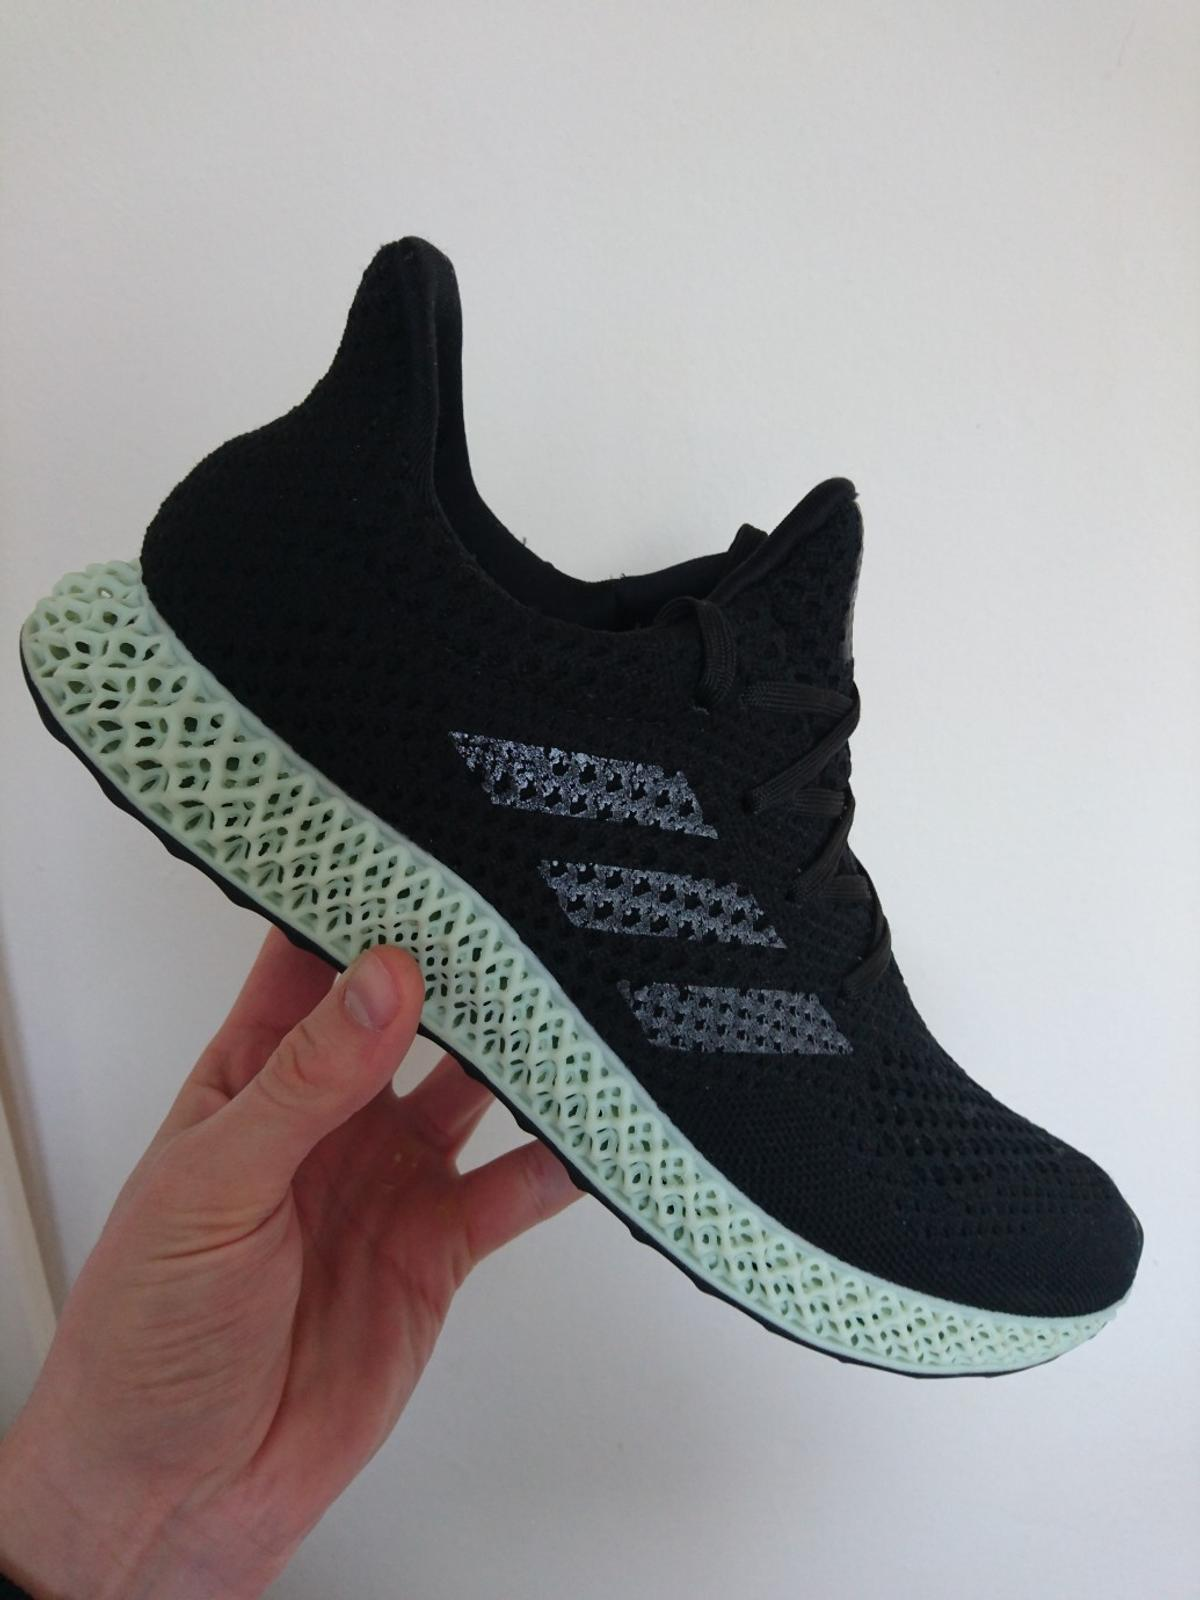 billig adidas futurecraft 4d grün